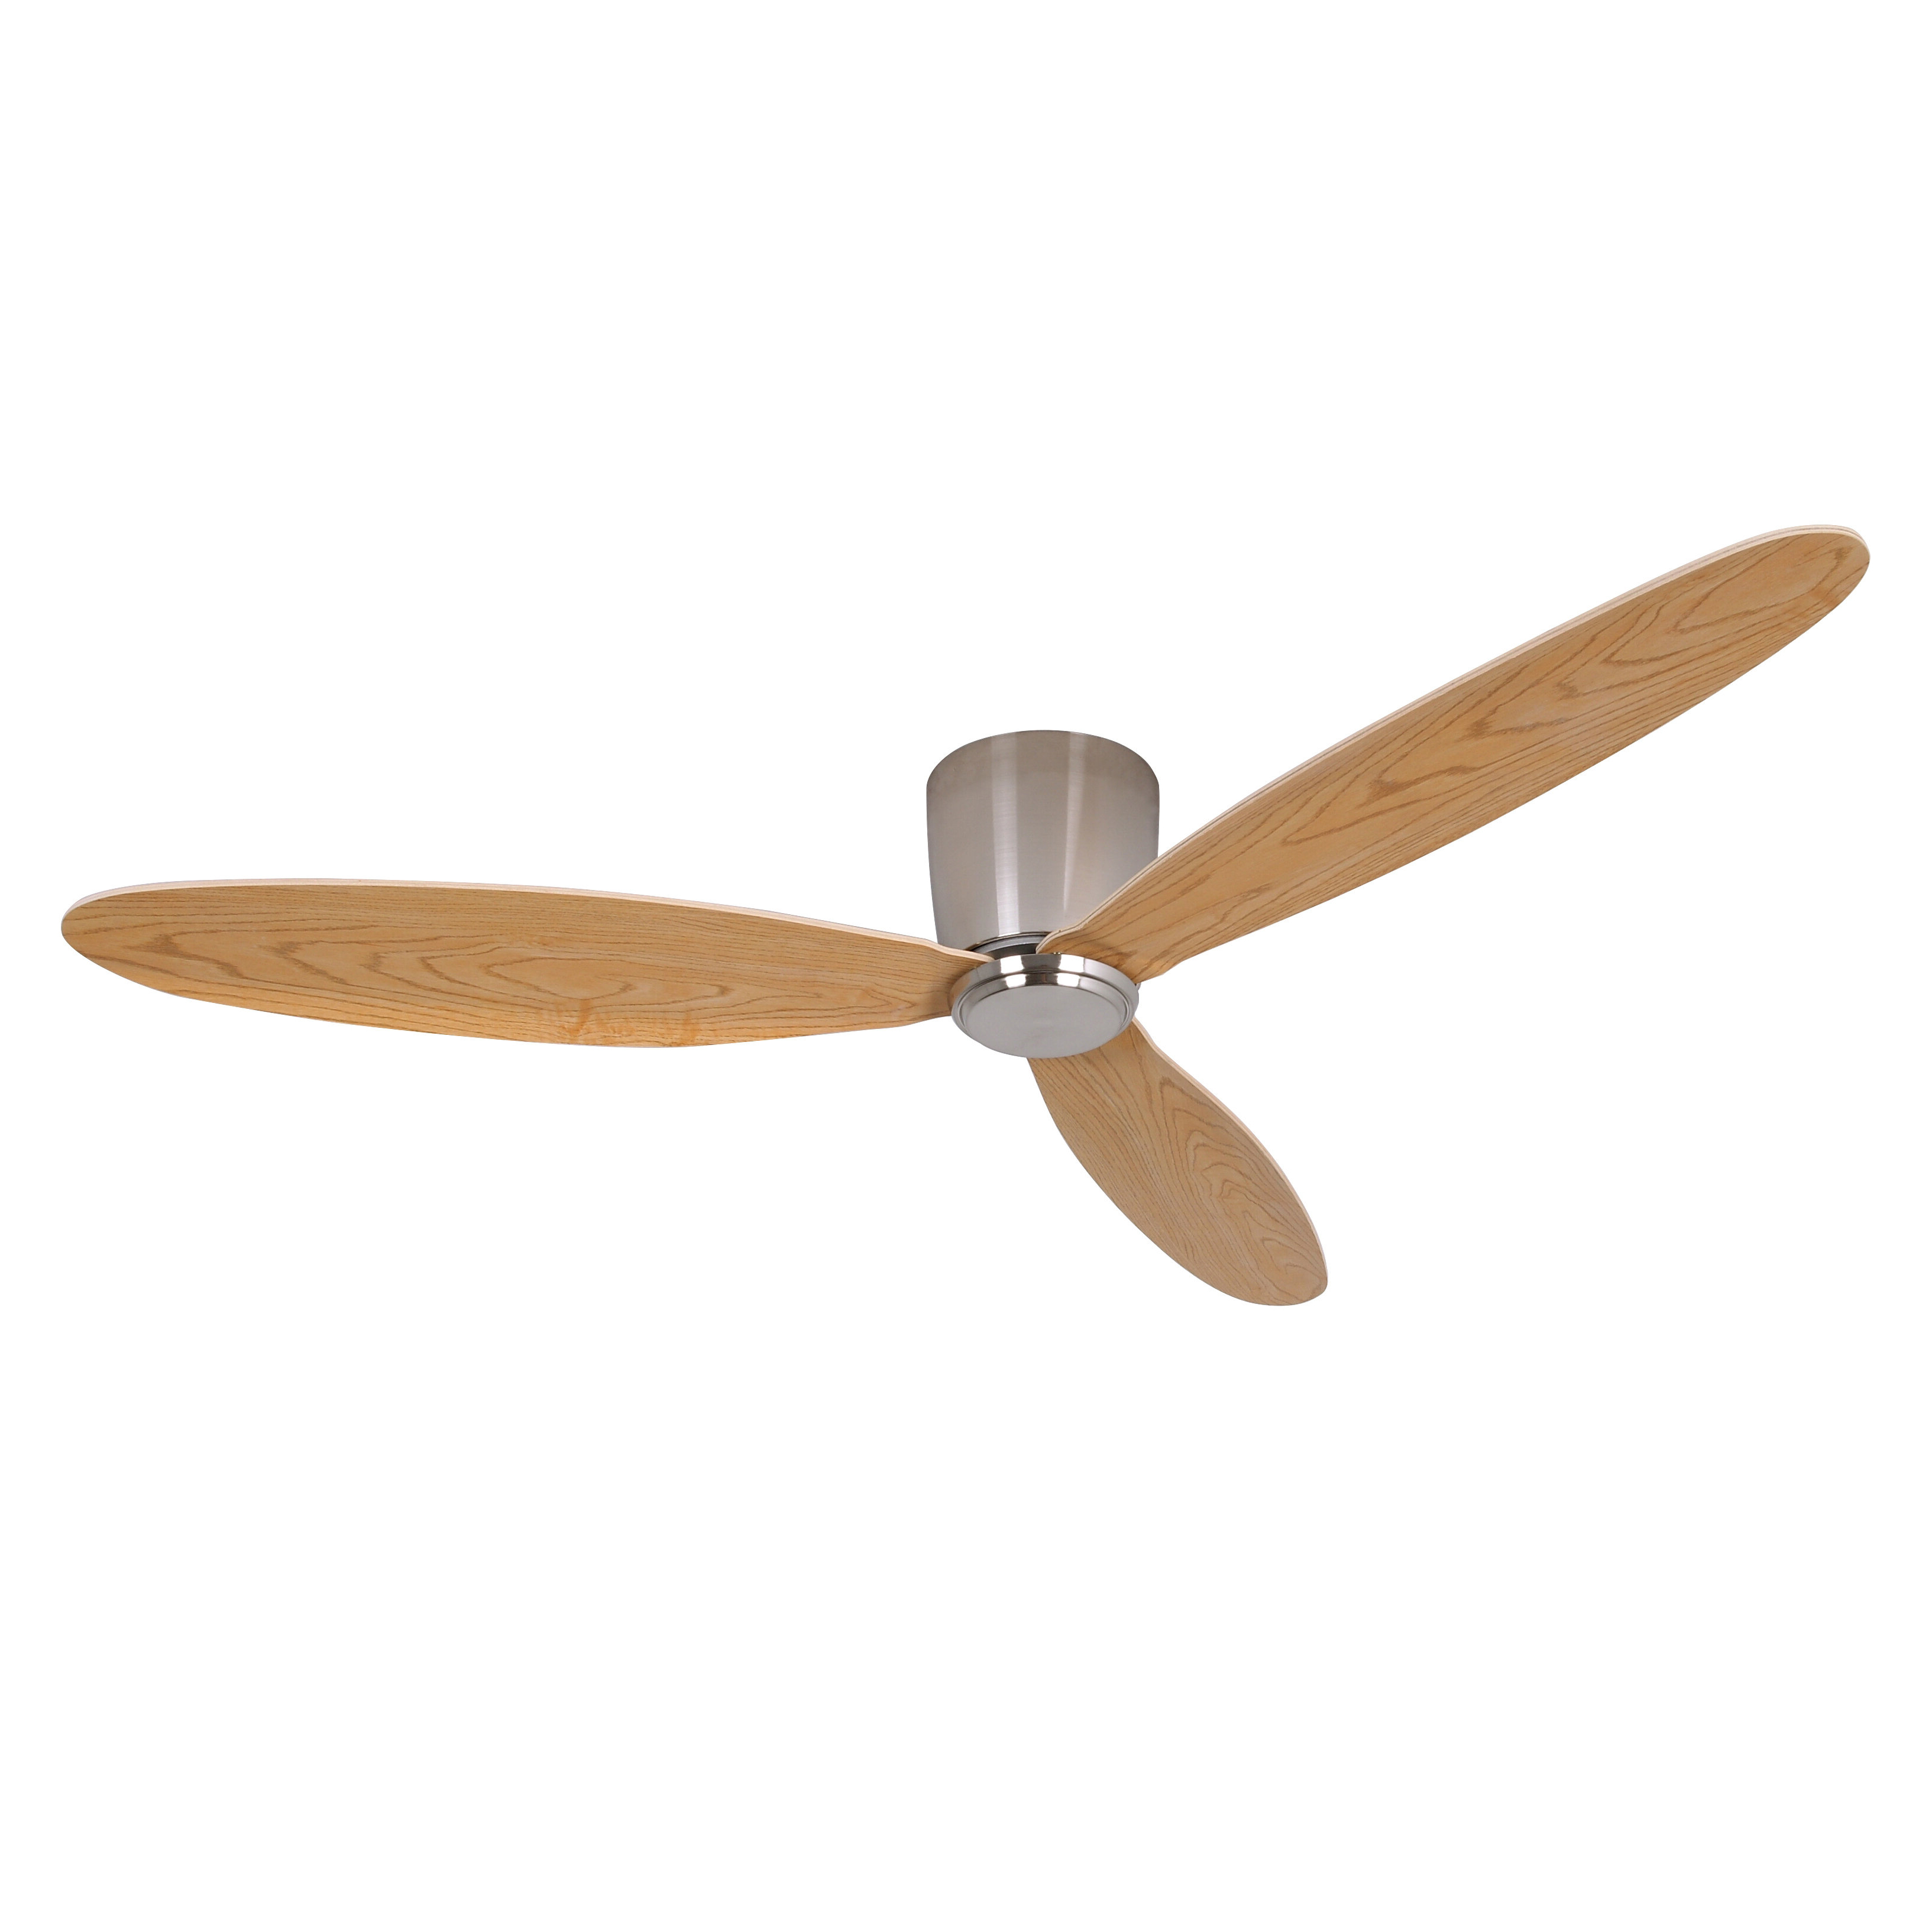 """Theron Catoe 3 Blade Ceiling Fans In Widely Used 52"""" Anadarko 3 Blade Ceiling Fan With Remote (View 13 of 20)"""